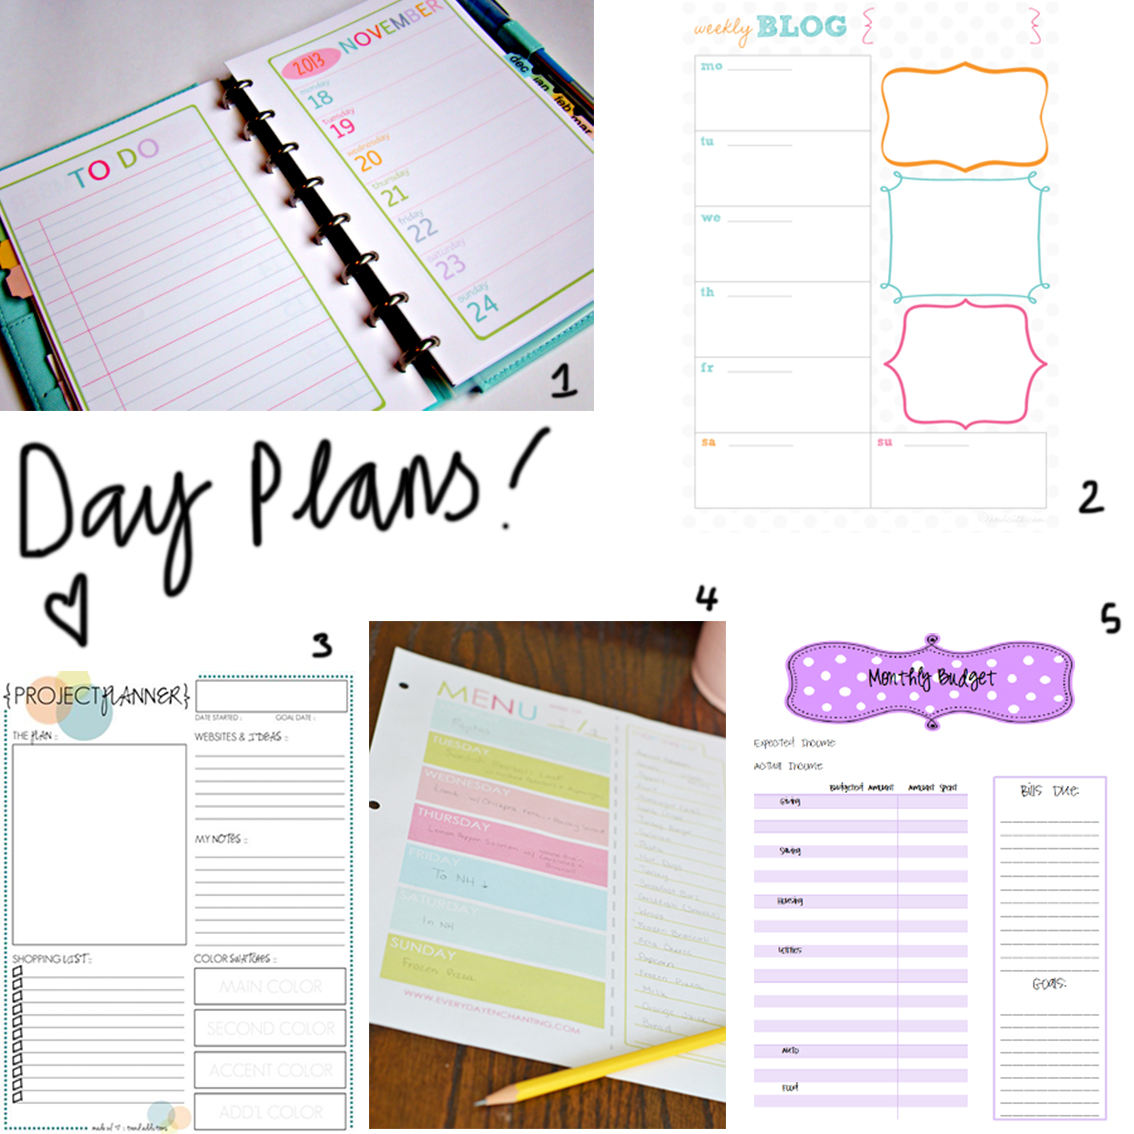 7 Best Images of Free Printable Planner Inserts - Free ...